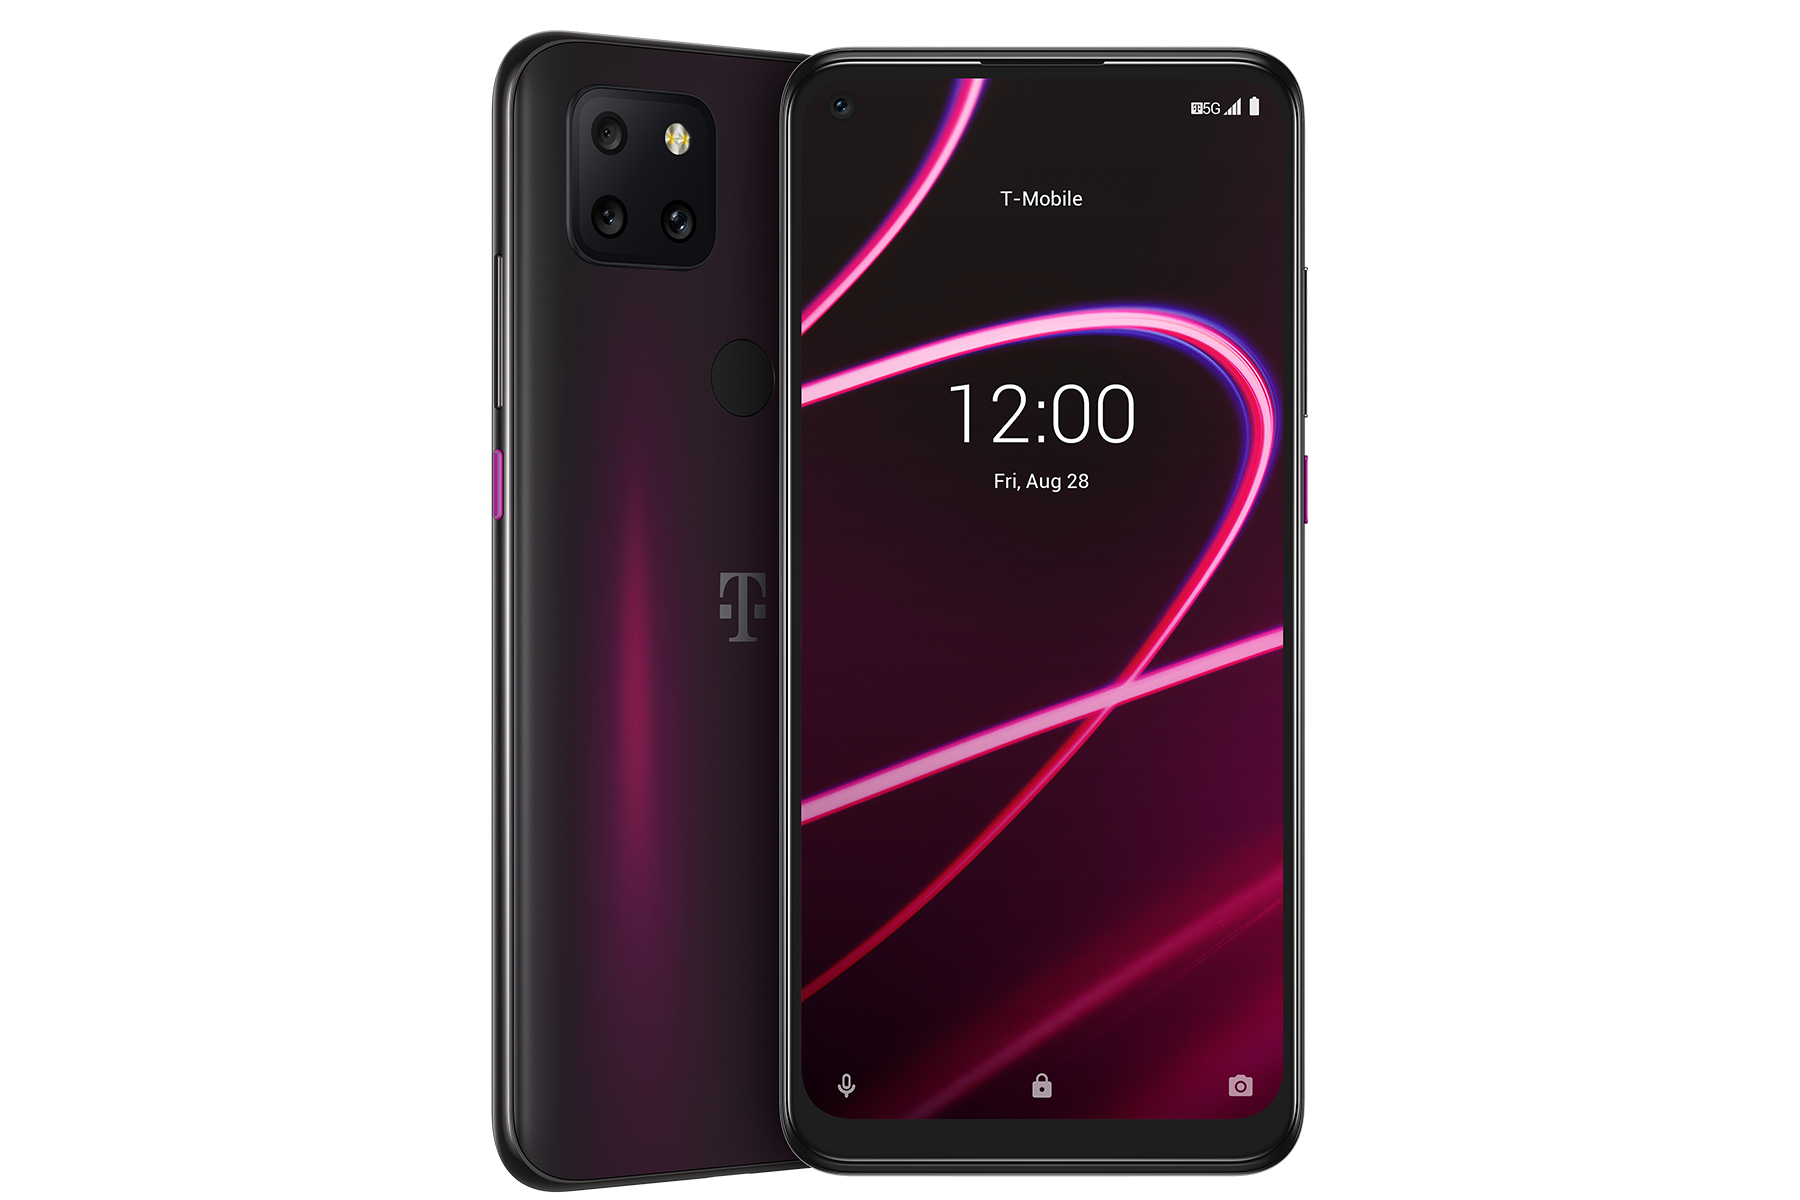 T Mobile S Latest Revvl Phone Offers 5g Speeds For 200 Engadget